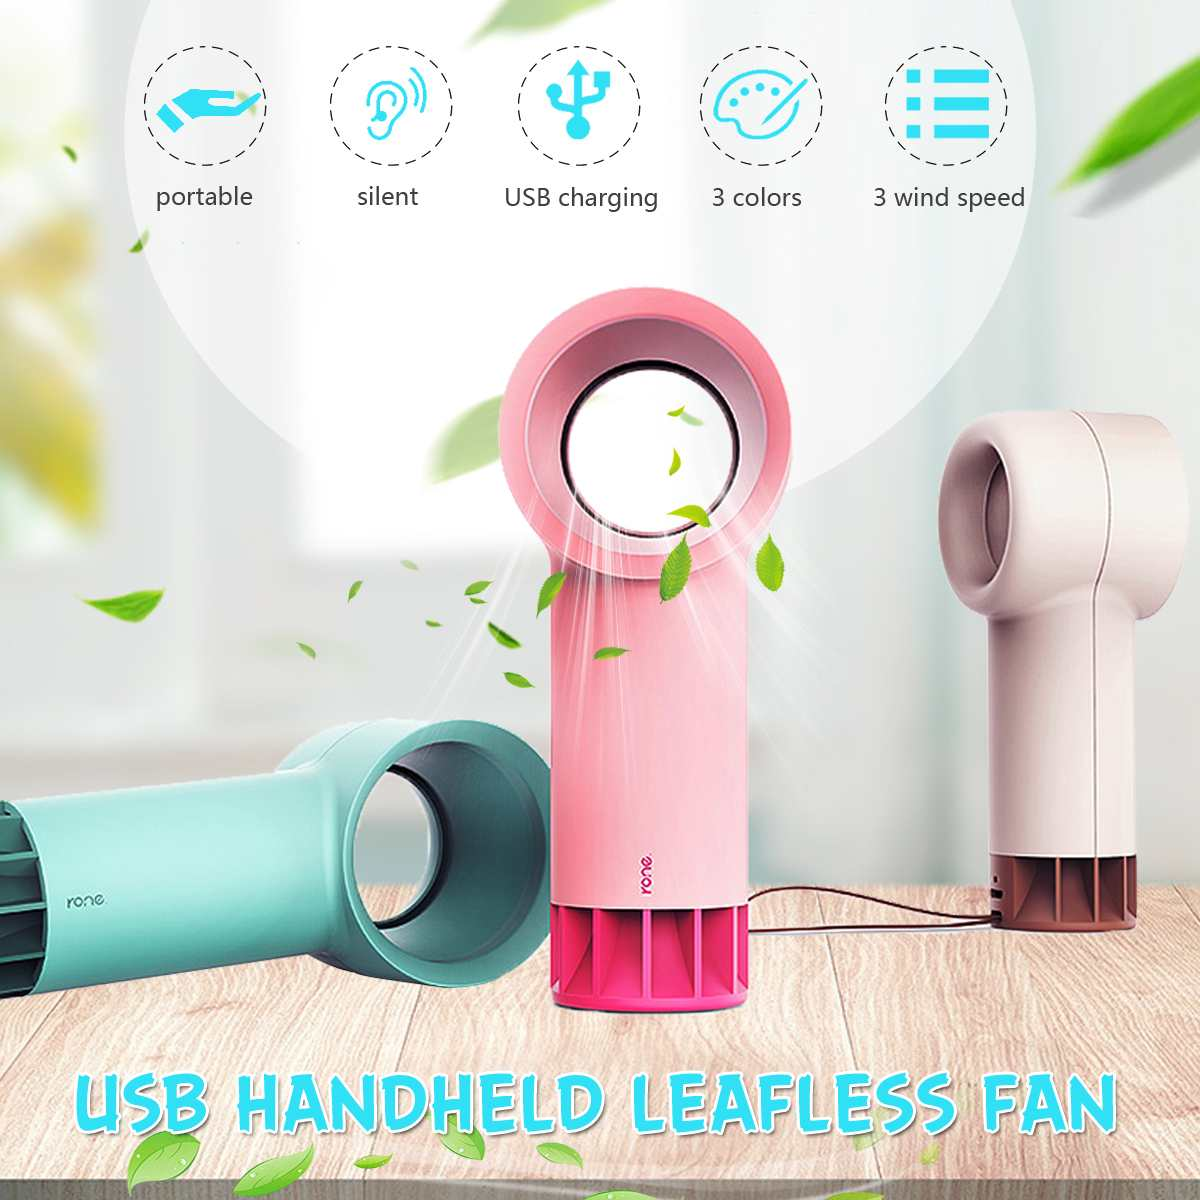 Electric Bladeless Fan Portable Mini Leafless Fan Handheld 3 Speed Adjustable USB Rechargeable Air Cooling Fan Cordless SummerElectric Bladeless Fan Portable Mini Leafless Fan Handheld 3 Speed Adjustable USB Rechargeable Air Cooling Fan Cordless Summer